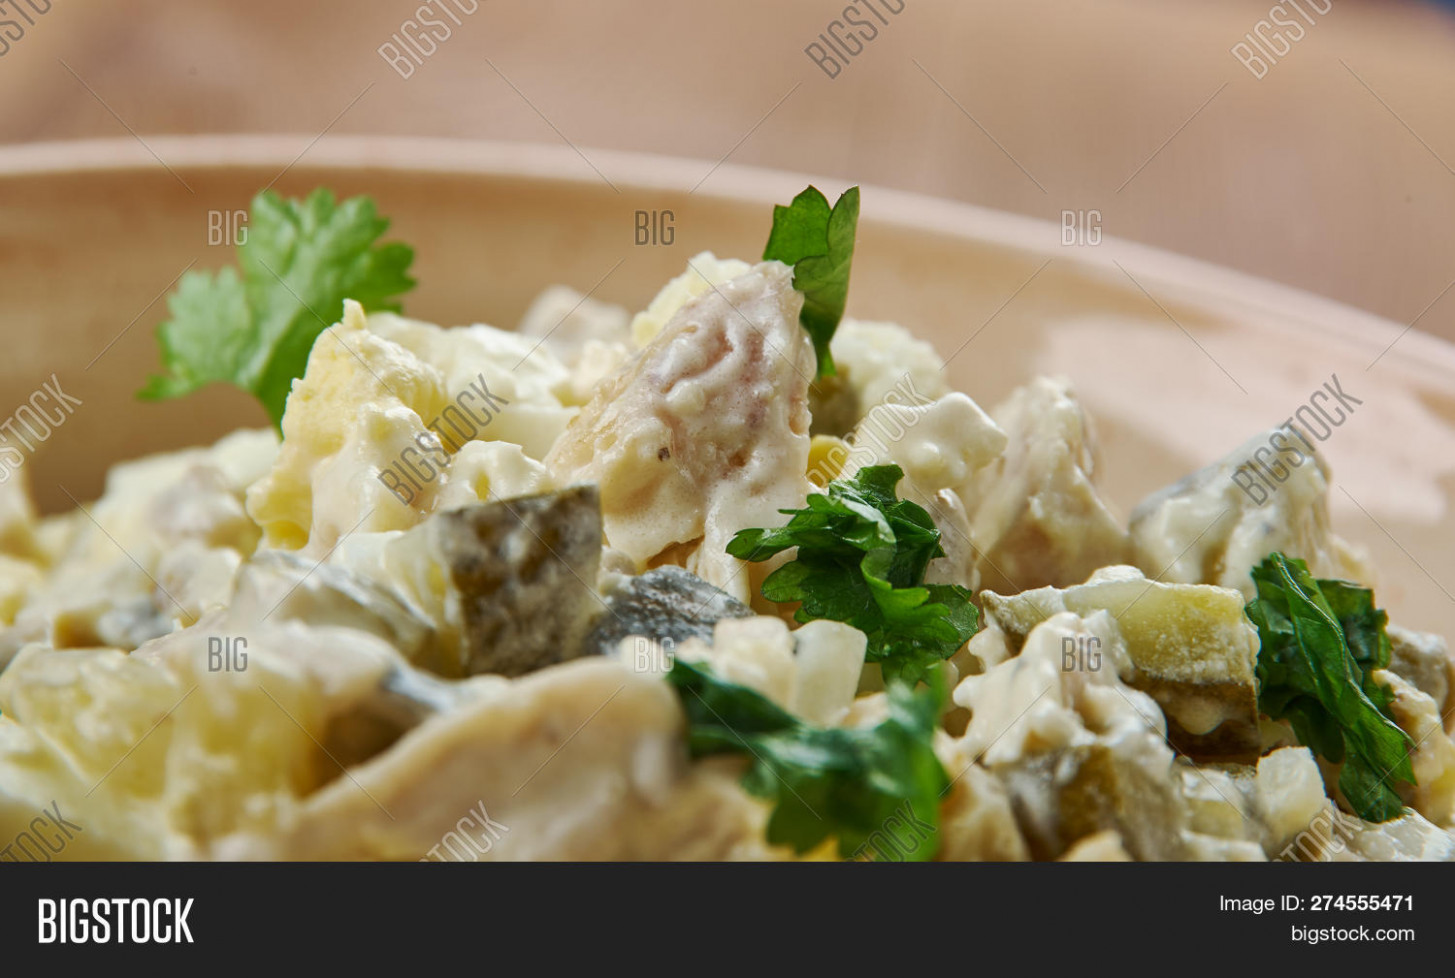 Zesty Chicken Salad Image & Photo (Free Trial) | Bigstock - recipes made with canned chicken